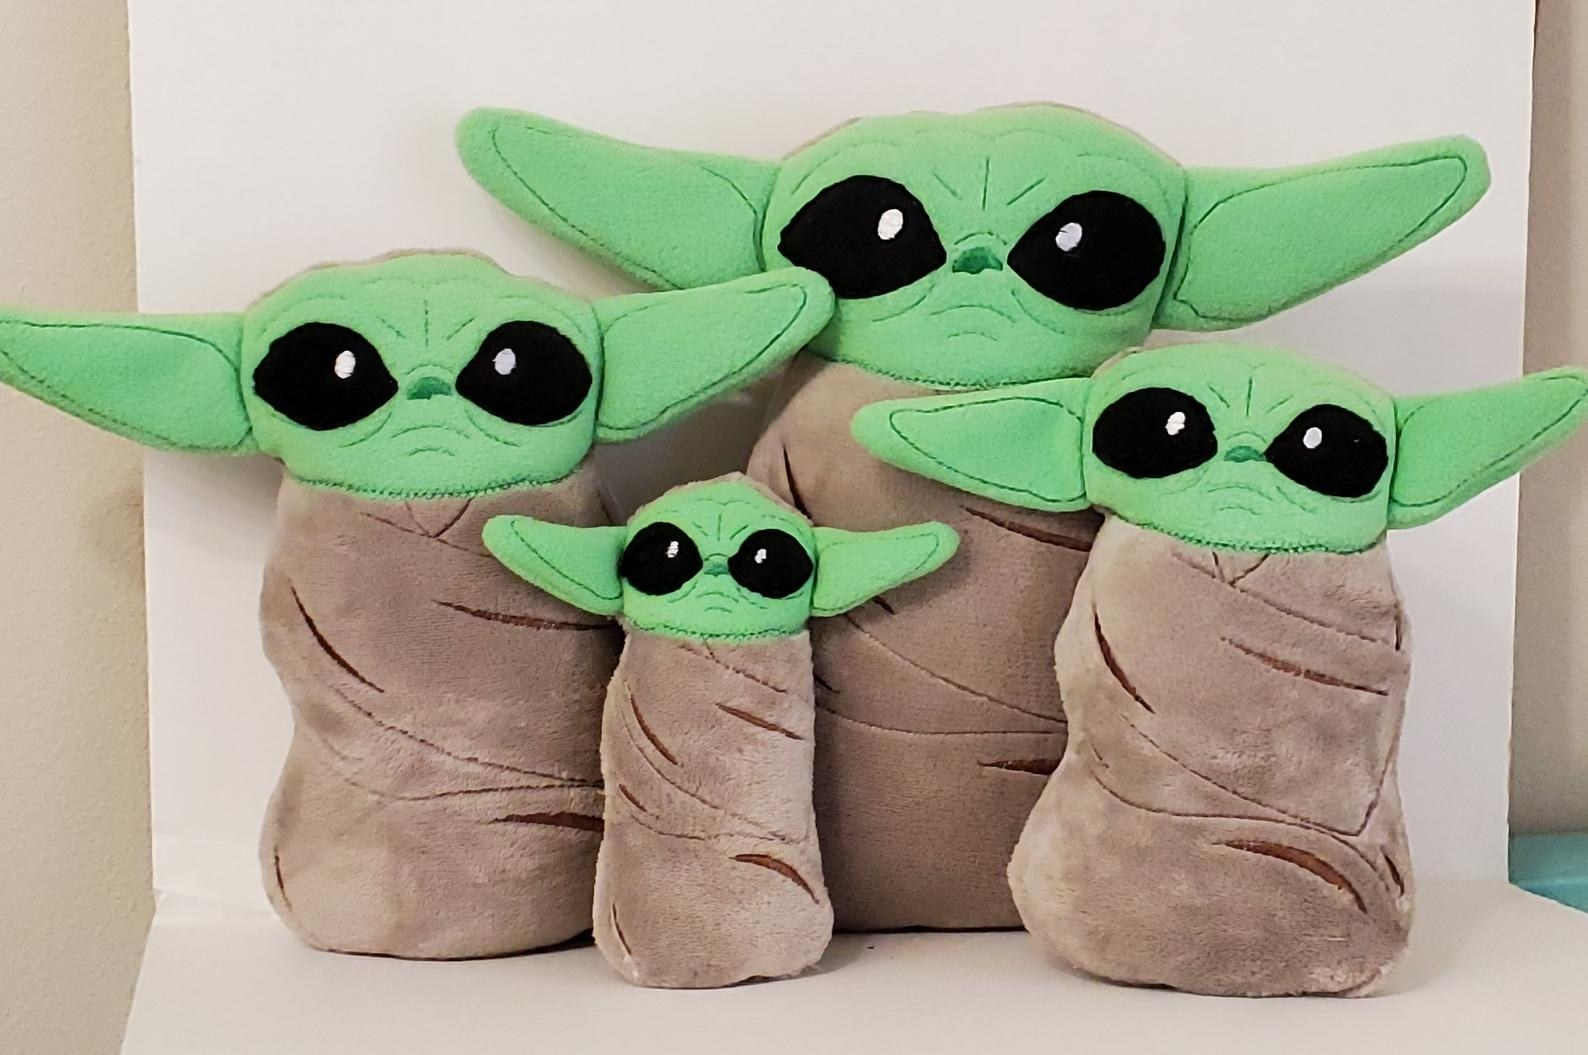 four different sized stuffed baby yoda dolls seemingly swaddled like a baby in a brown blanket